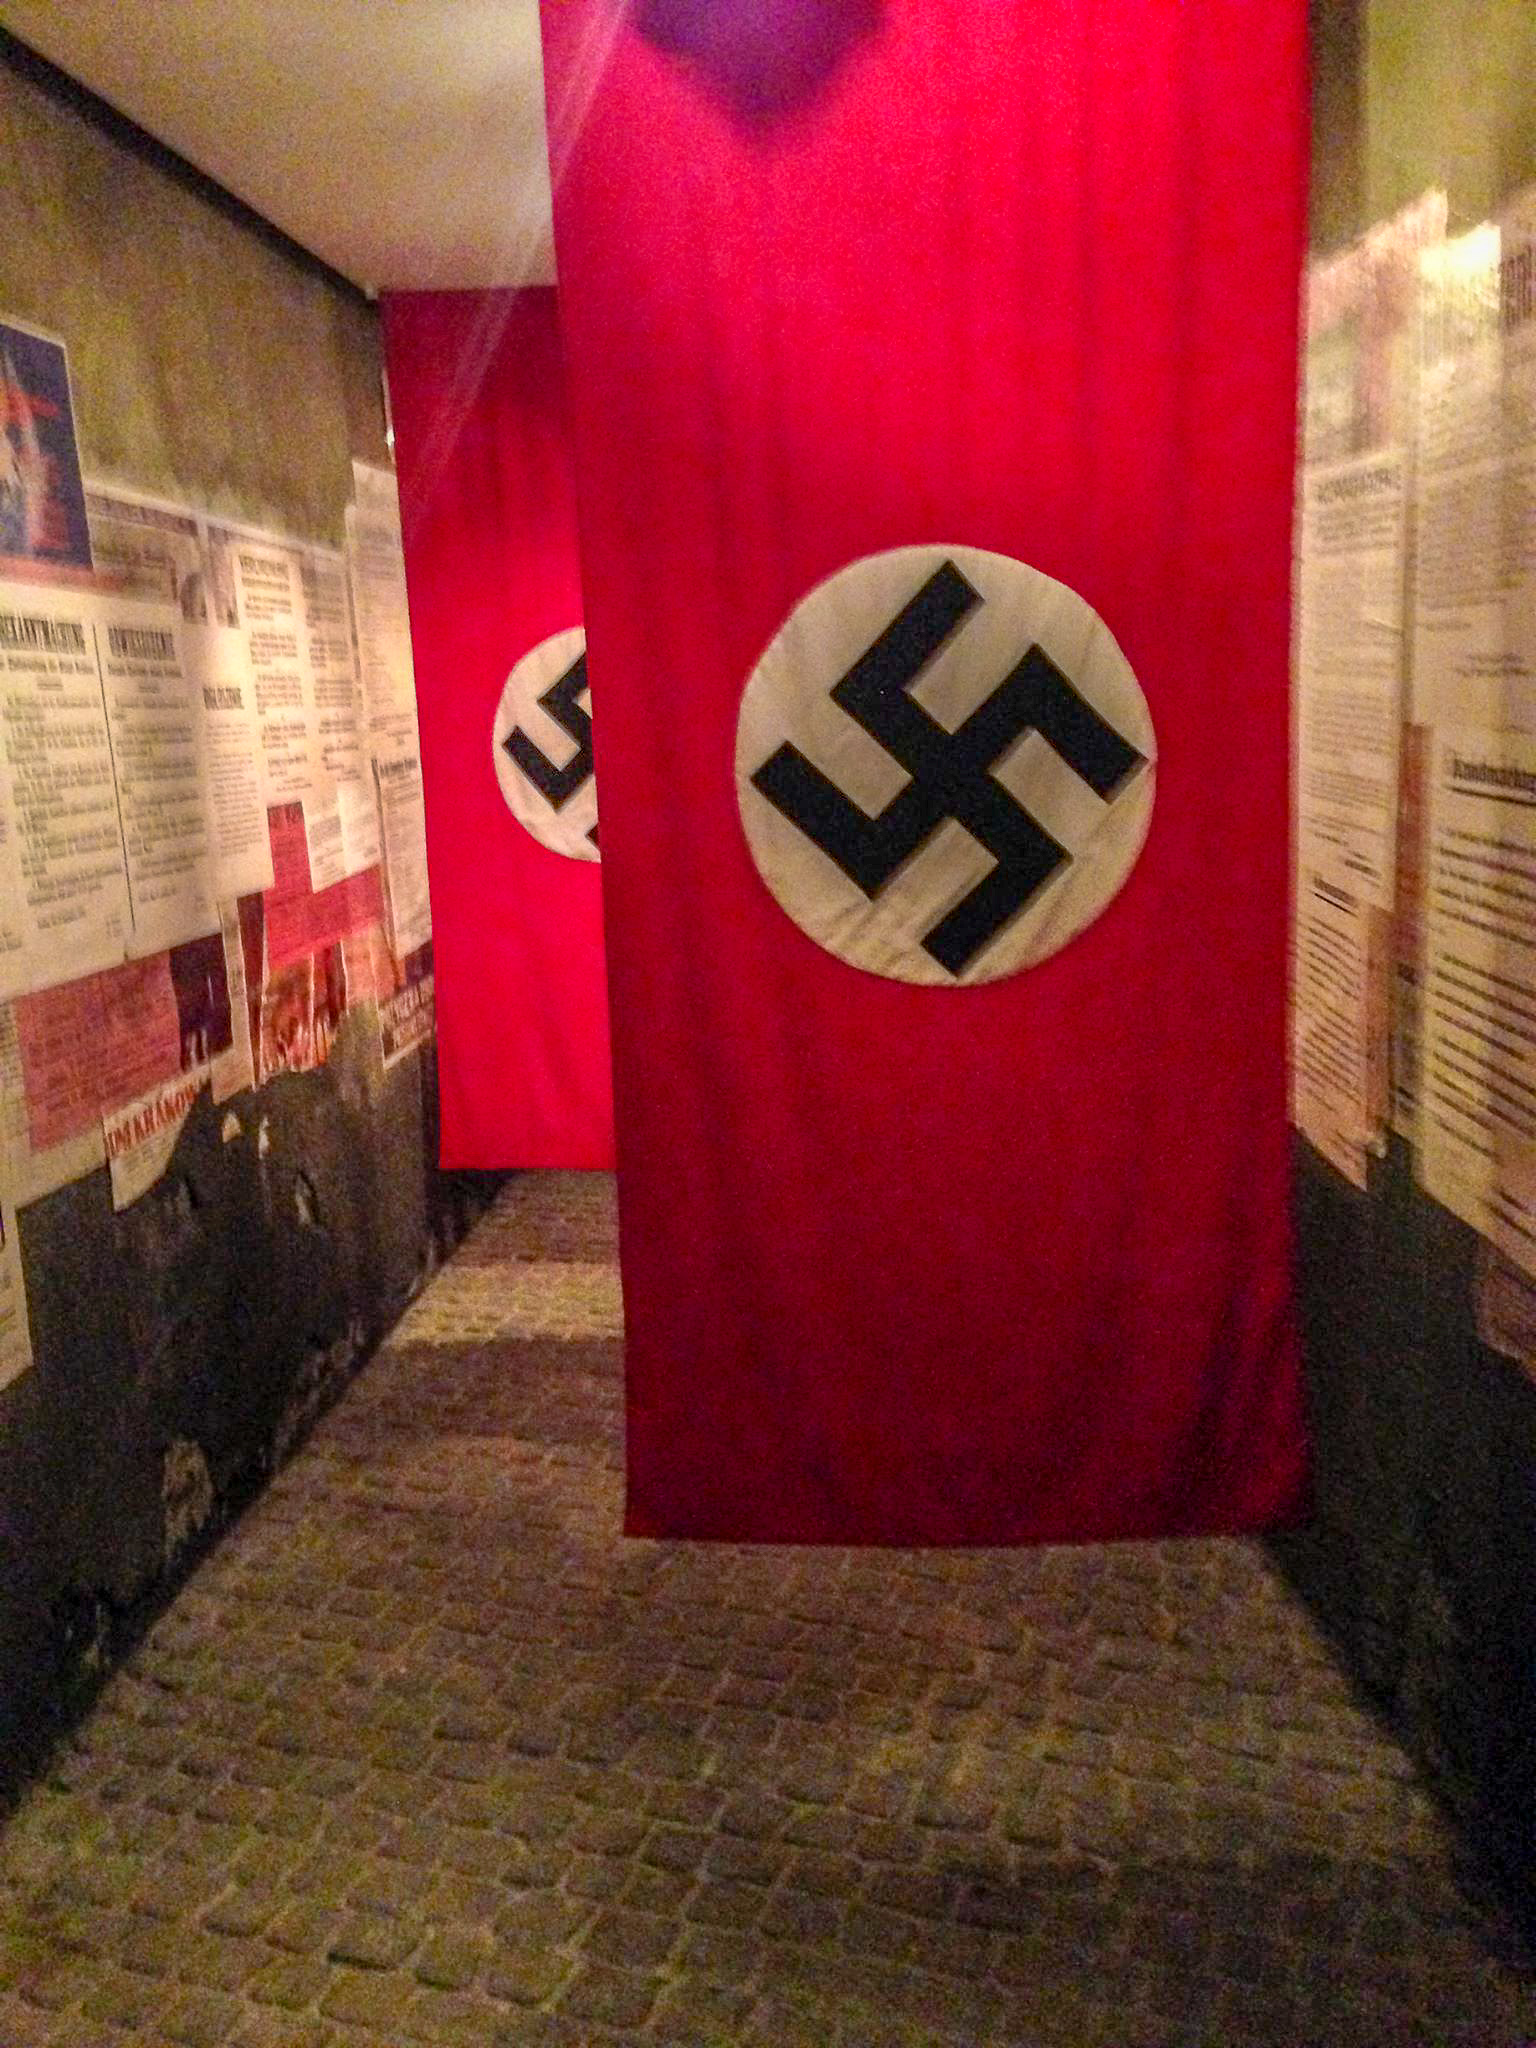 Nazi flags inside the museum which once hung in the city's streets.